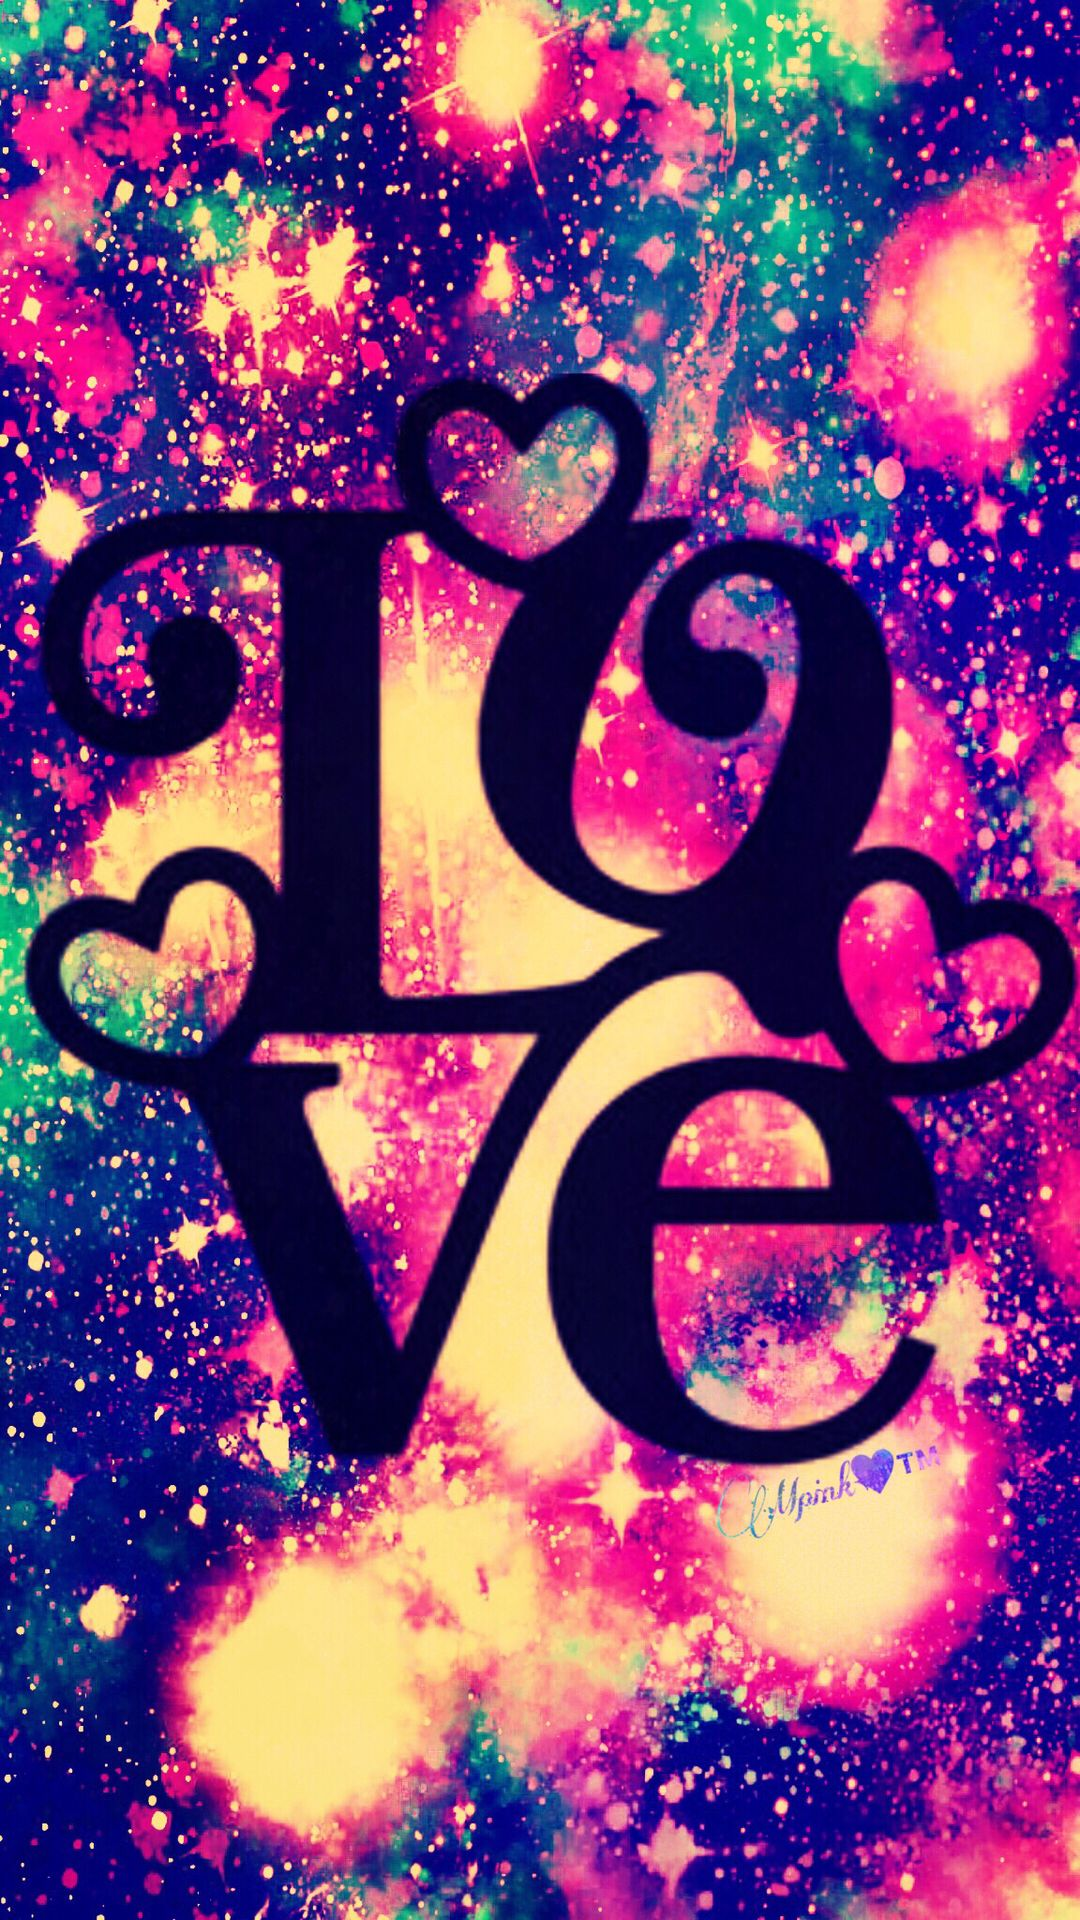 Love Galaxy Wallpaper Androidwallpaper Iphonewallpaper